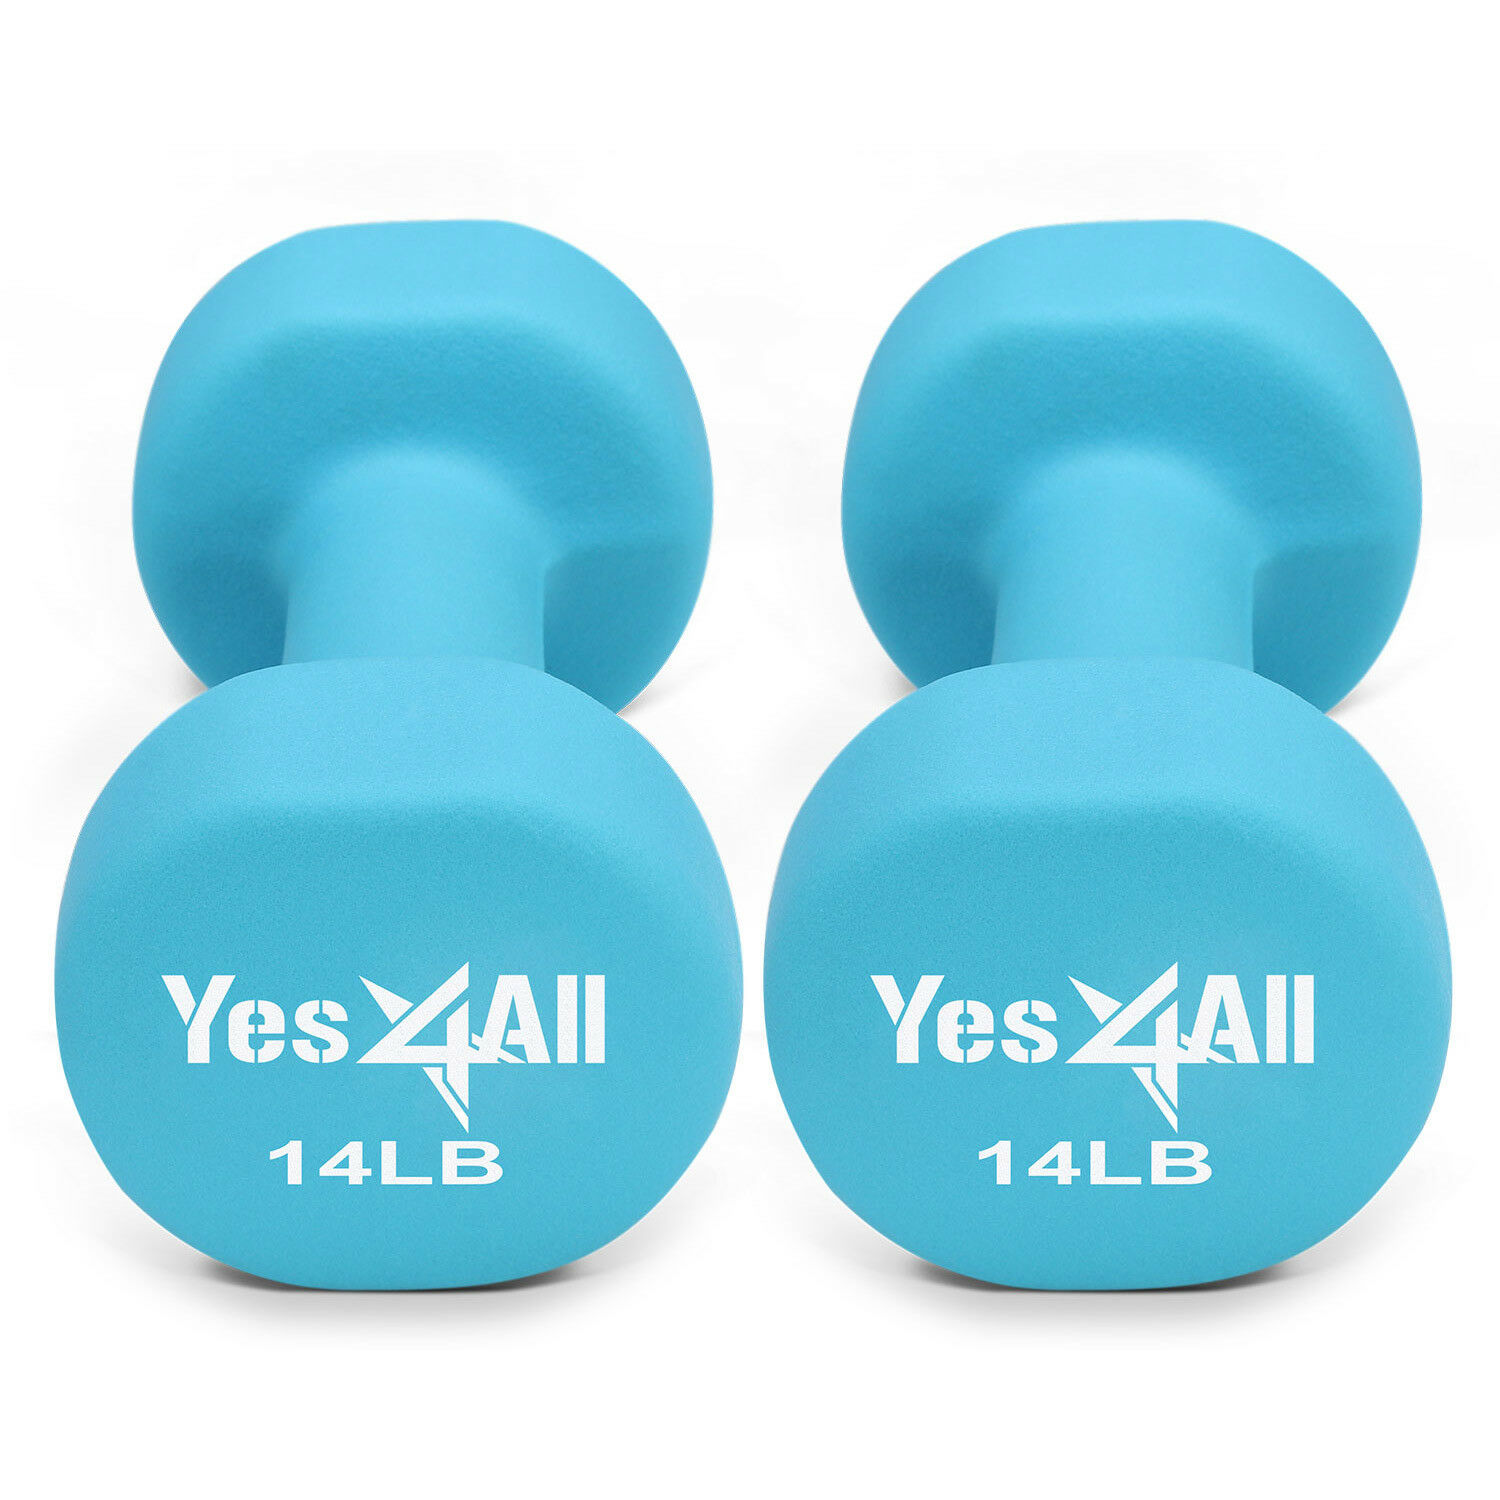 Yes4All 14 lb Dumbbell Weight Set with Non-Slip  Grip - Neoprene Dumbbell Pair²3D  more affordable